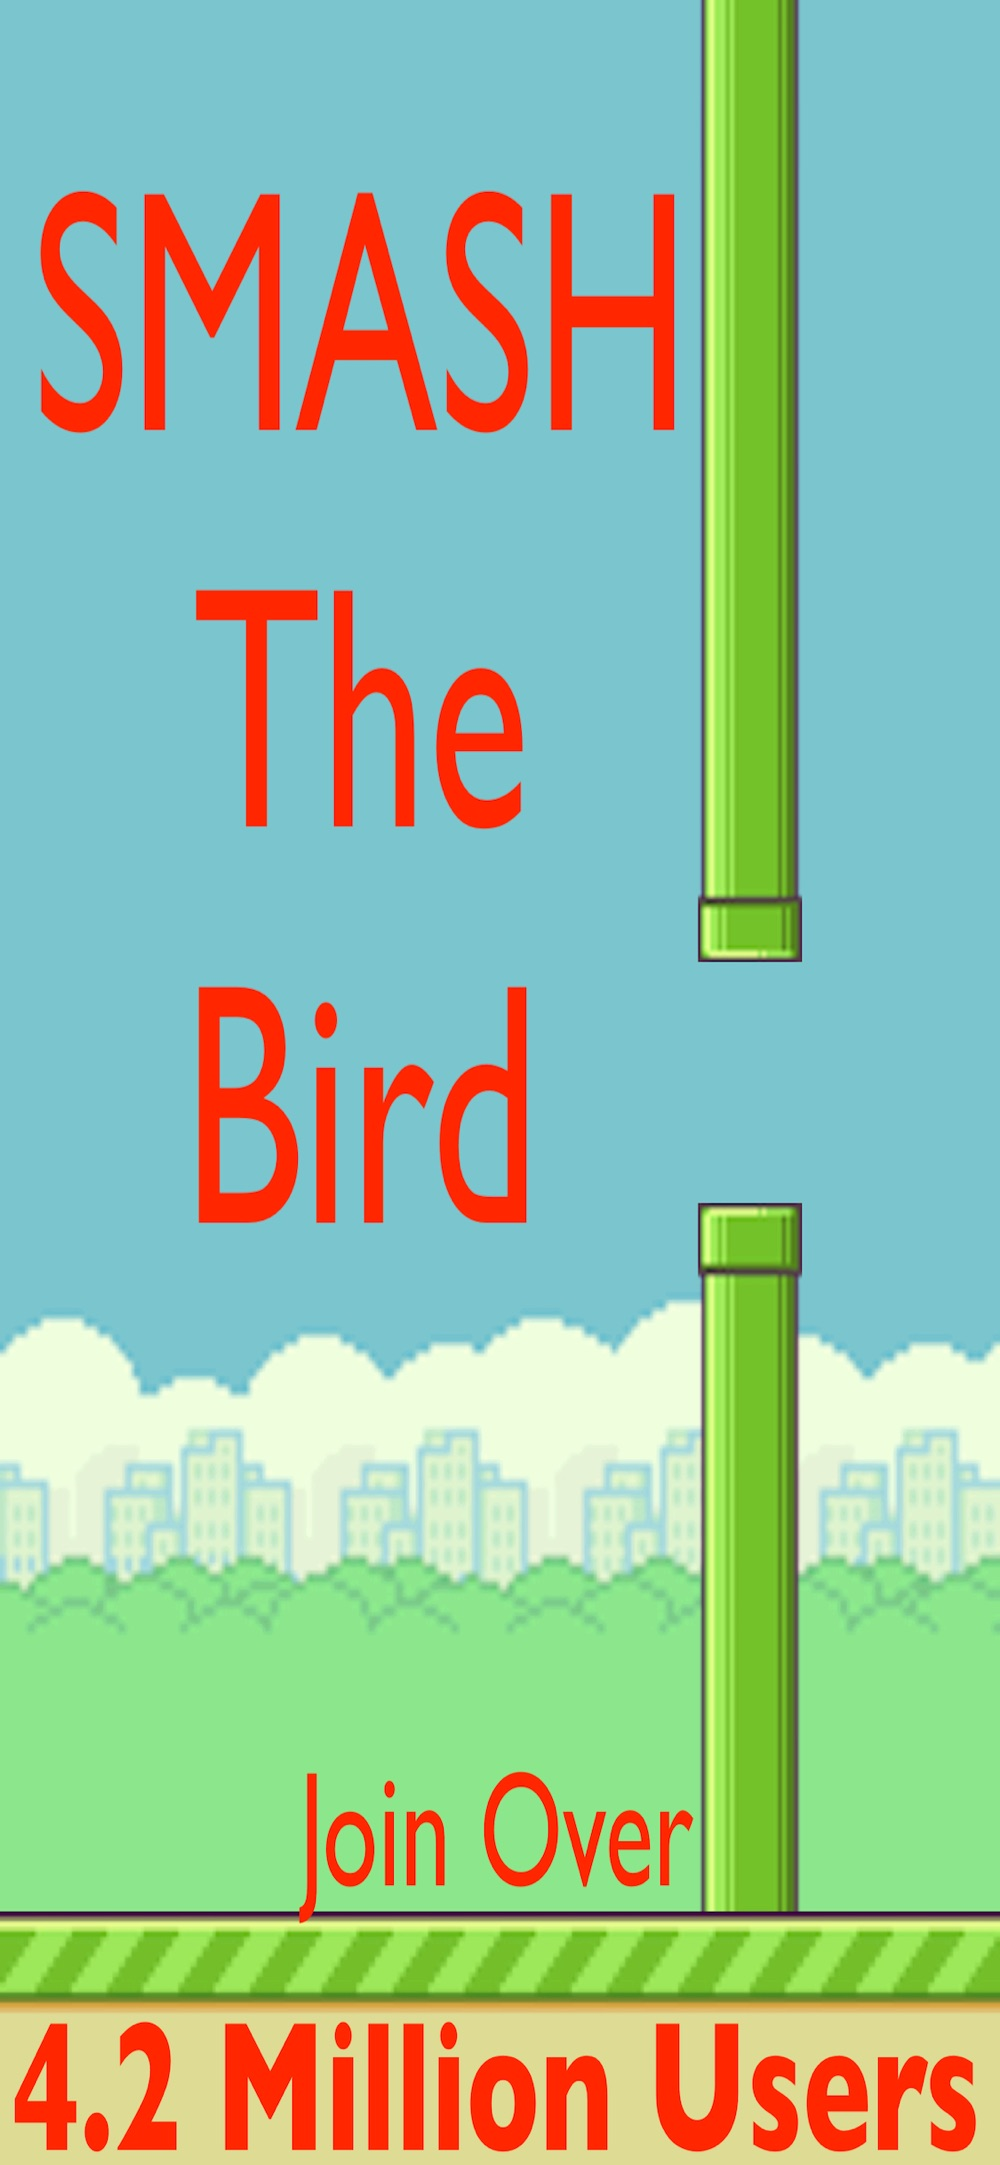 Flappy∞ – The Bird Game Cheat Codes